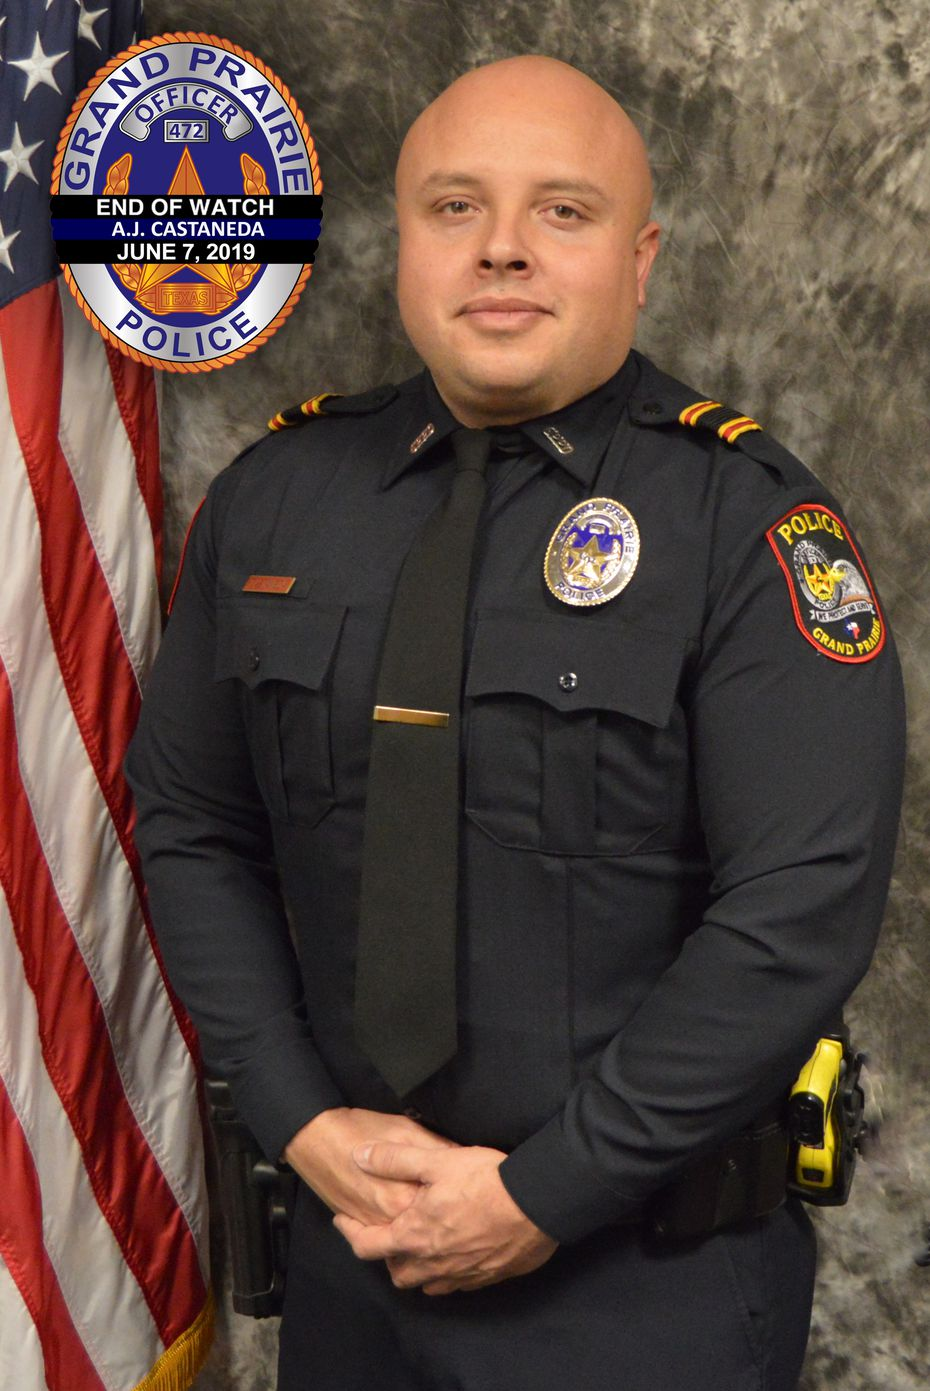 Grand Prairie police Officer A.J. Castaneda served in the department for five years. He is the third officer in the department's history to die in the line of duty.